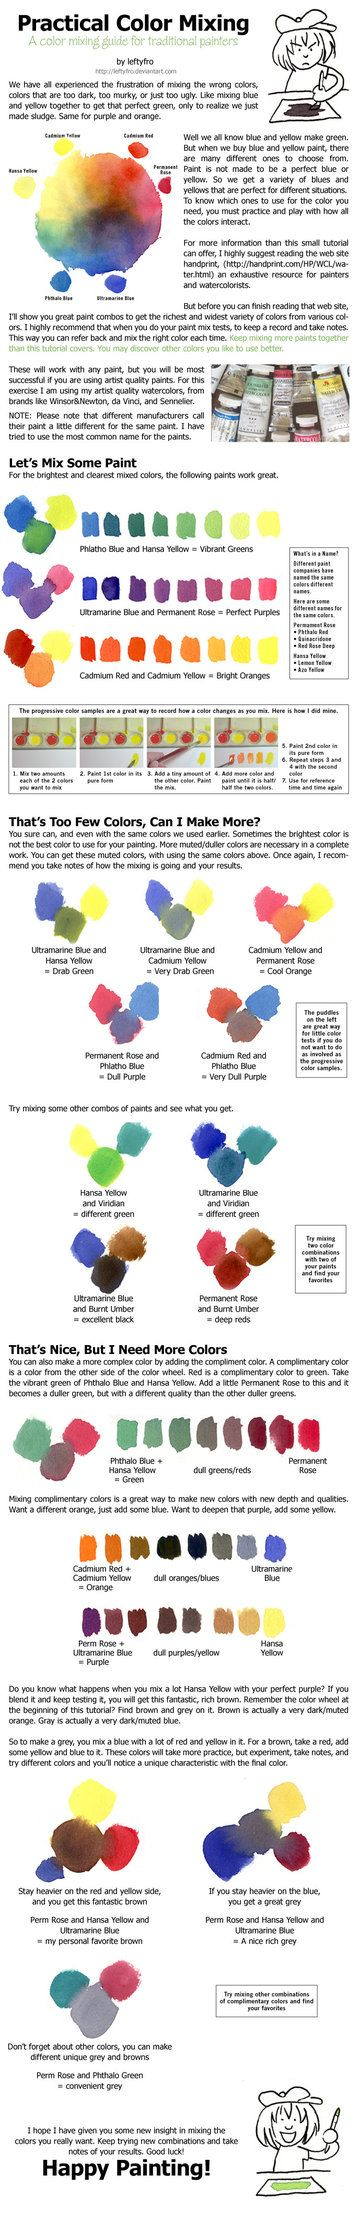 Online color mixer tool - Practical Traditional Paint Color Mixing Tutorial I Made This With My Watercolors But It Can